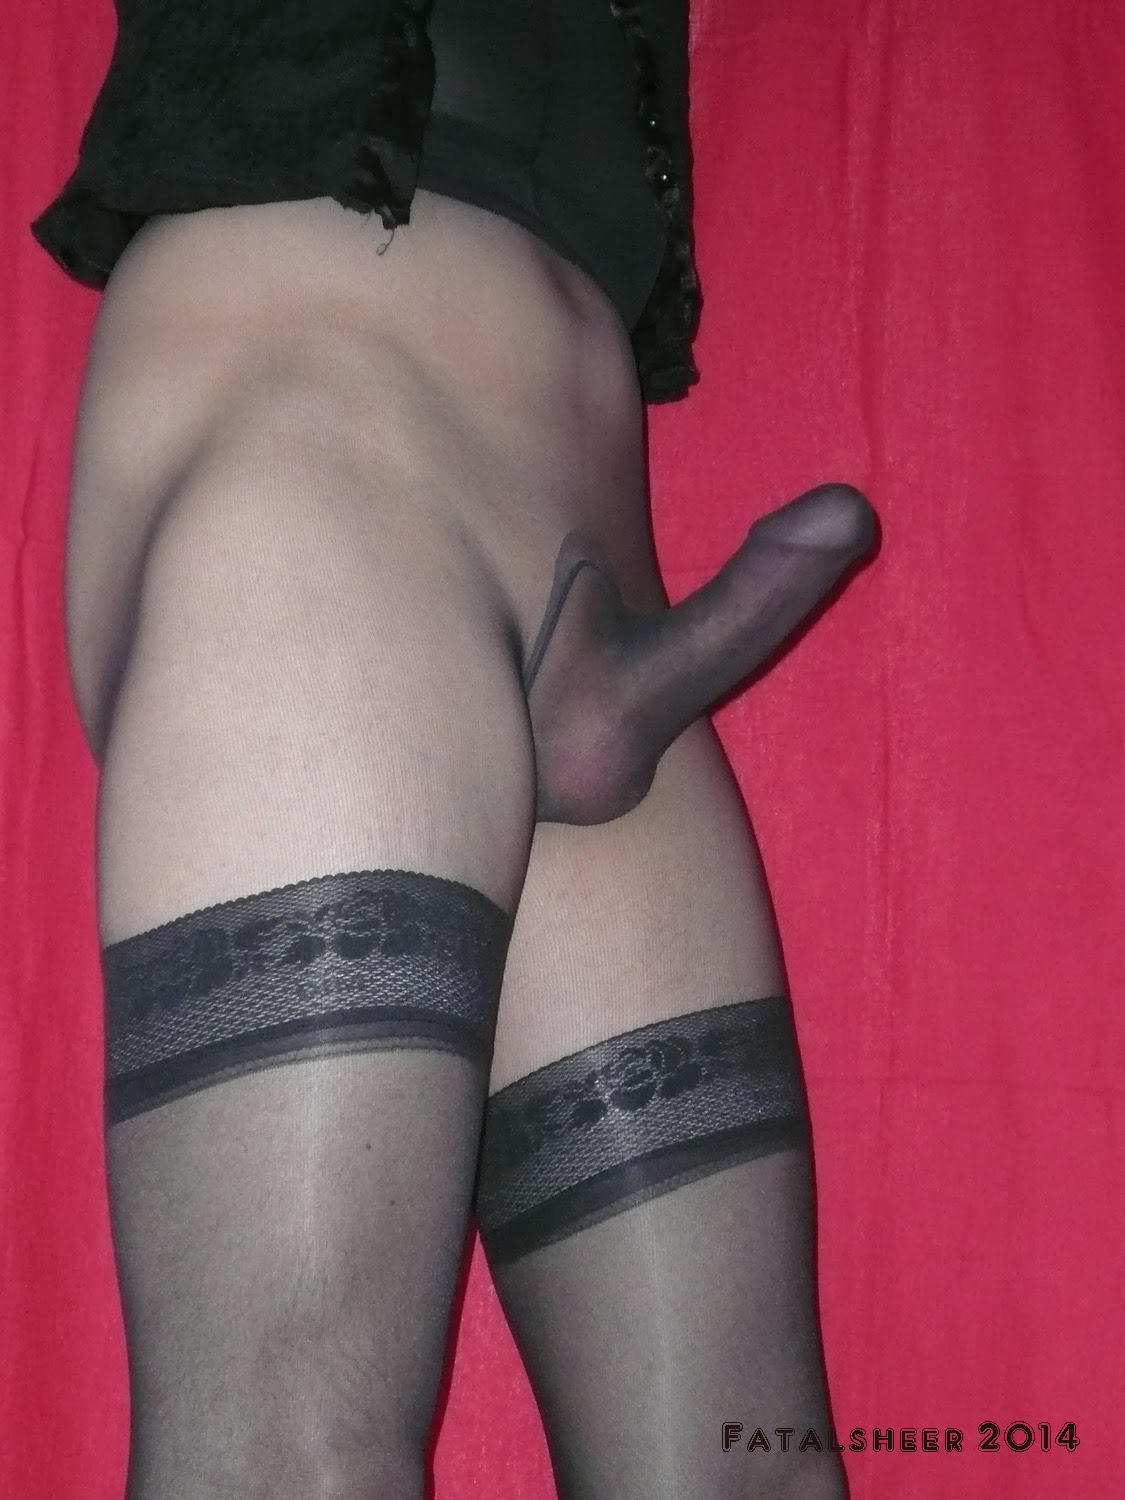 Pantyhose men pics wearing